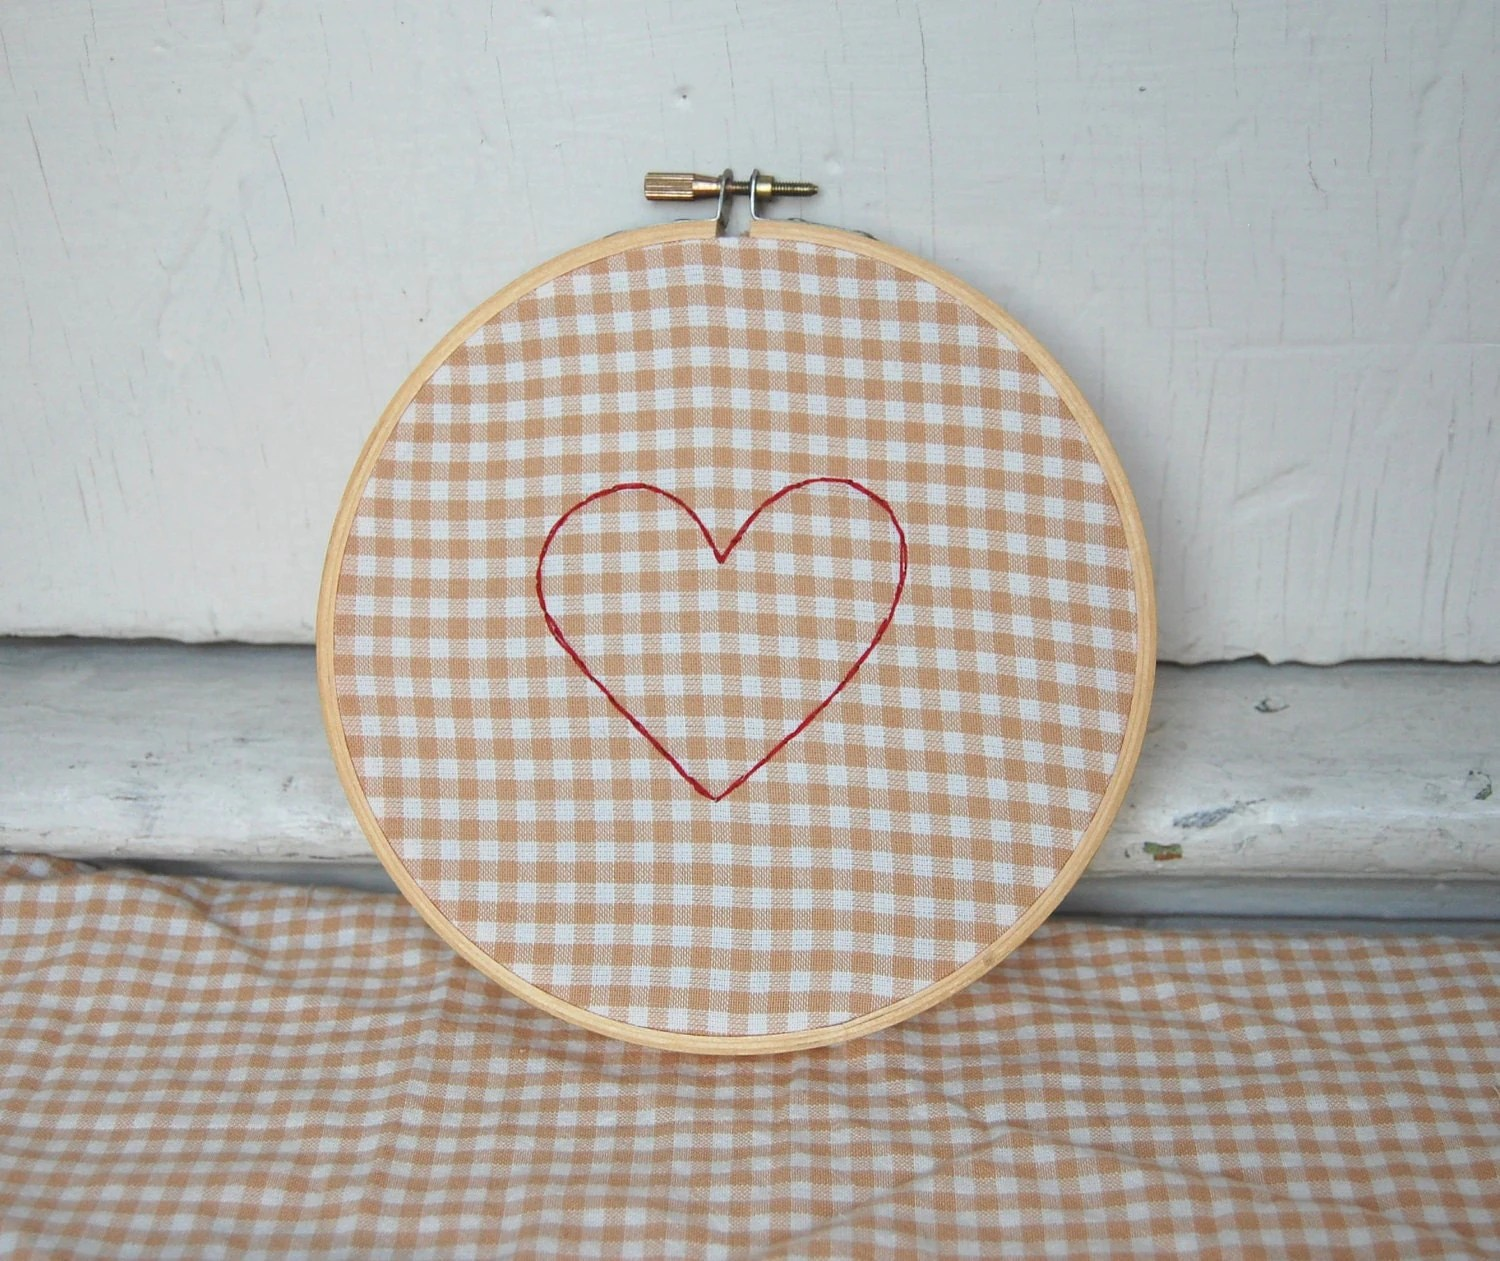 heart embroidery on organic cotton gingham from worthygoods textile on etsy.com